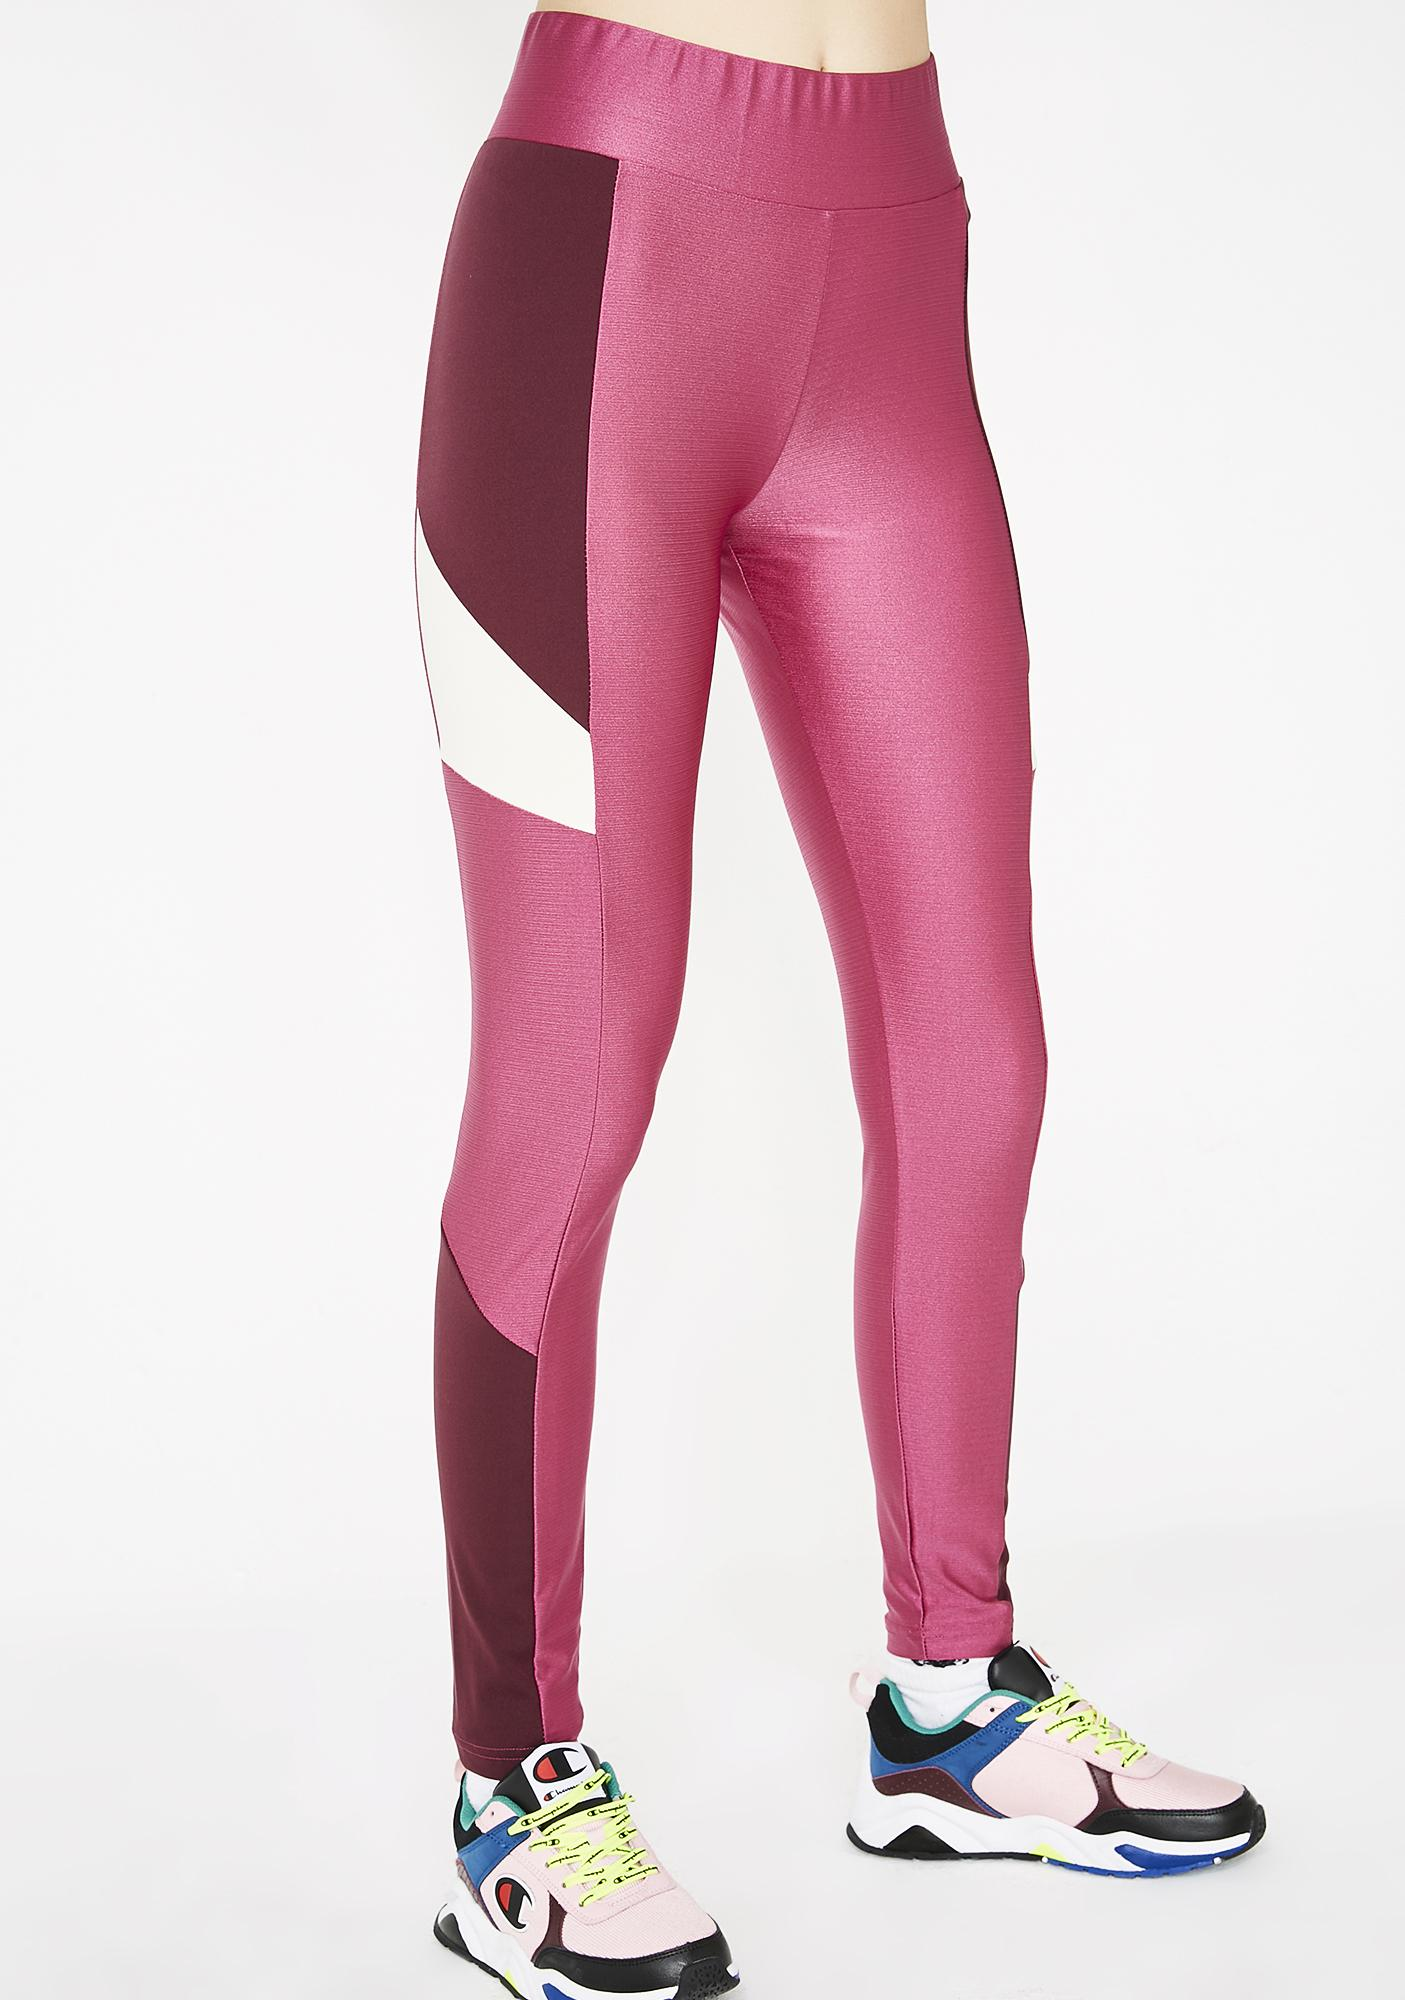 PUMA Blush Retro Leggings